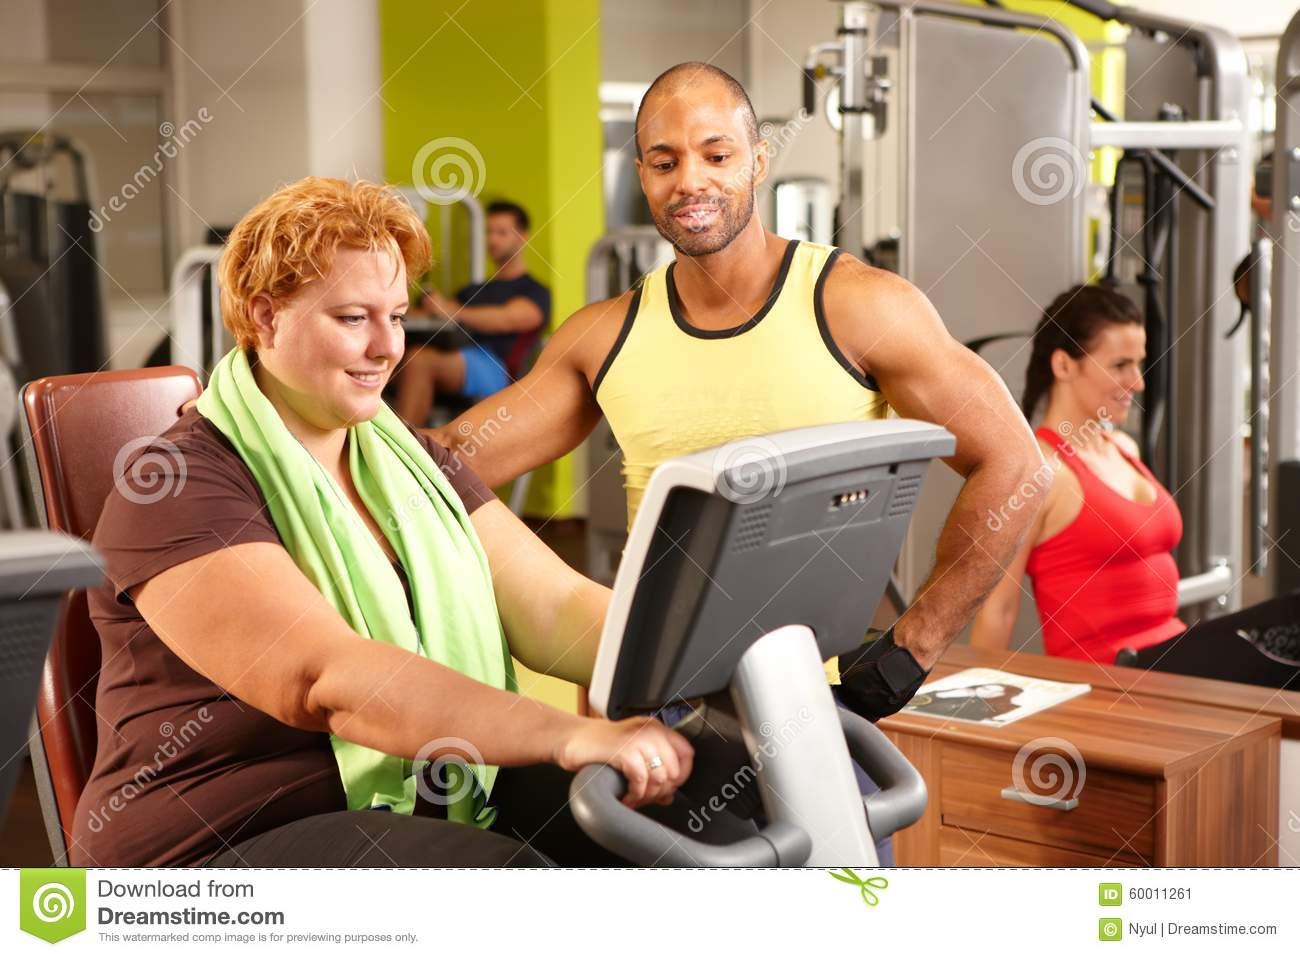 Personal trainer dating fat girl